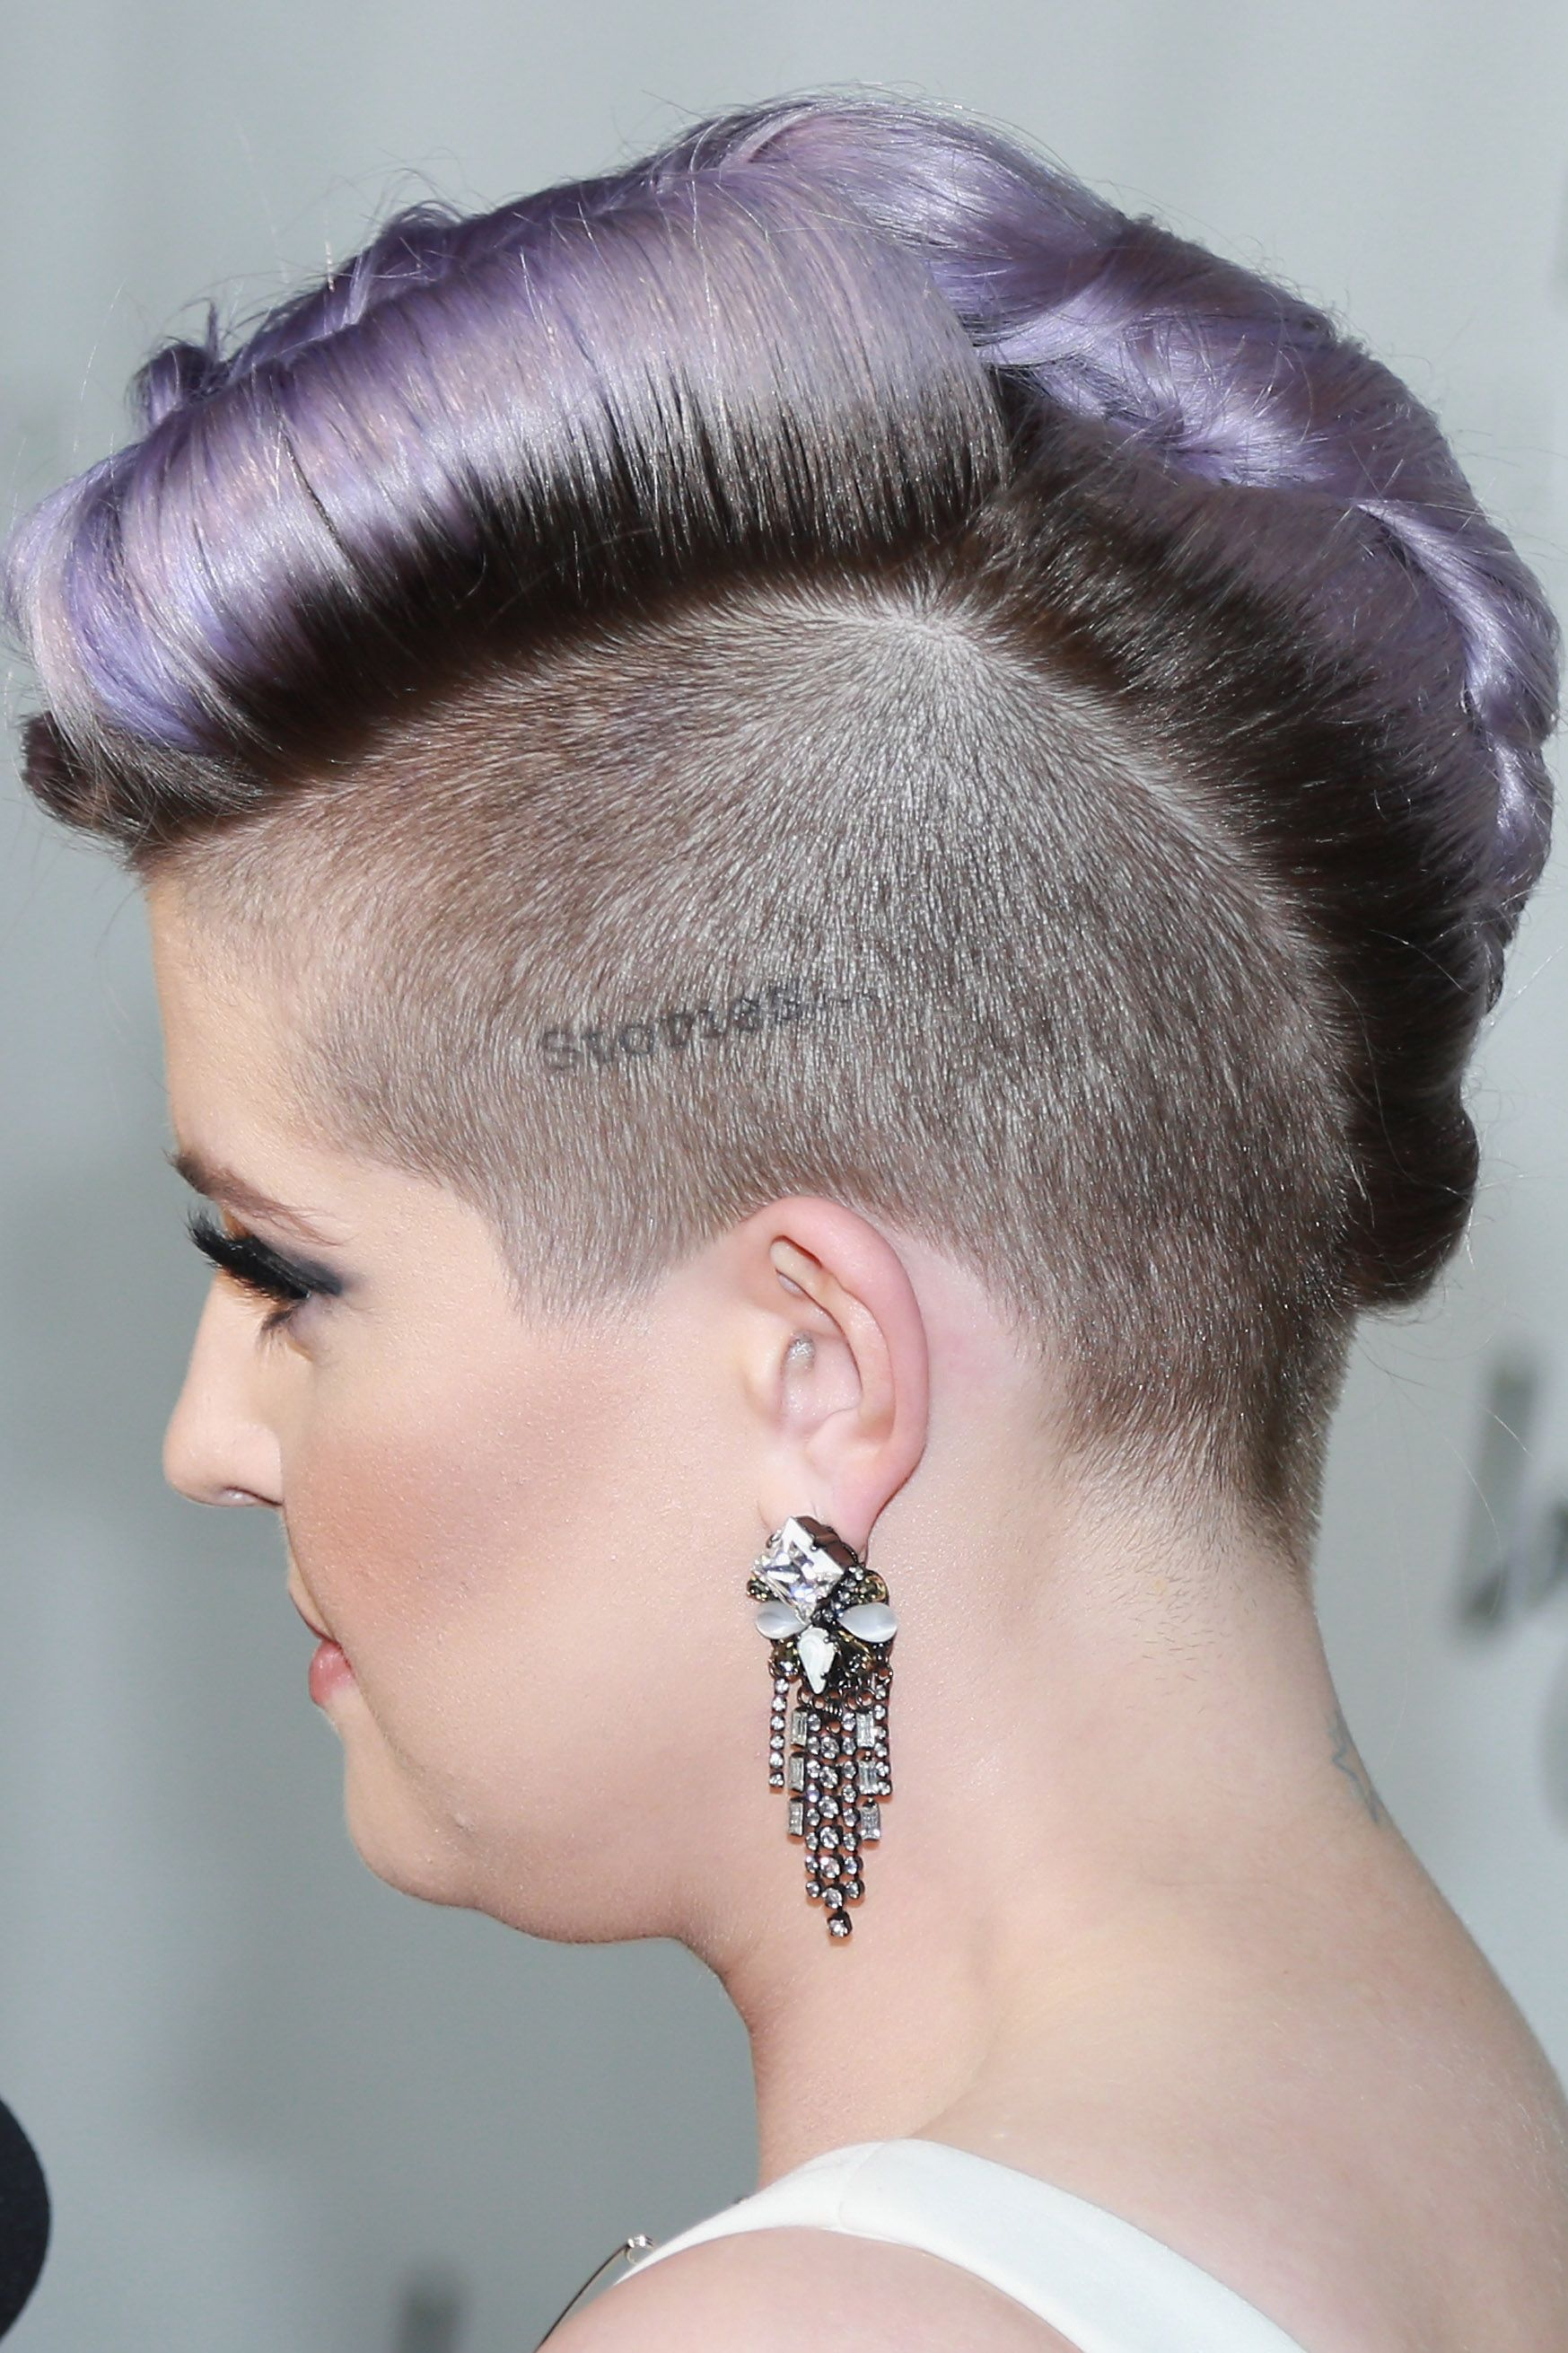 Jeffrey mayer/wireimage / getty images wonder. 11 Undercut Hairstyles For Women Proving Shaven Heads Are Seriously Glam